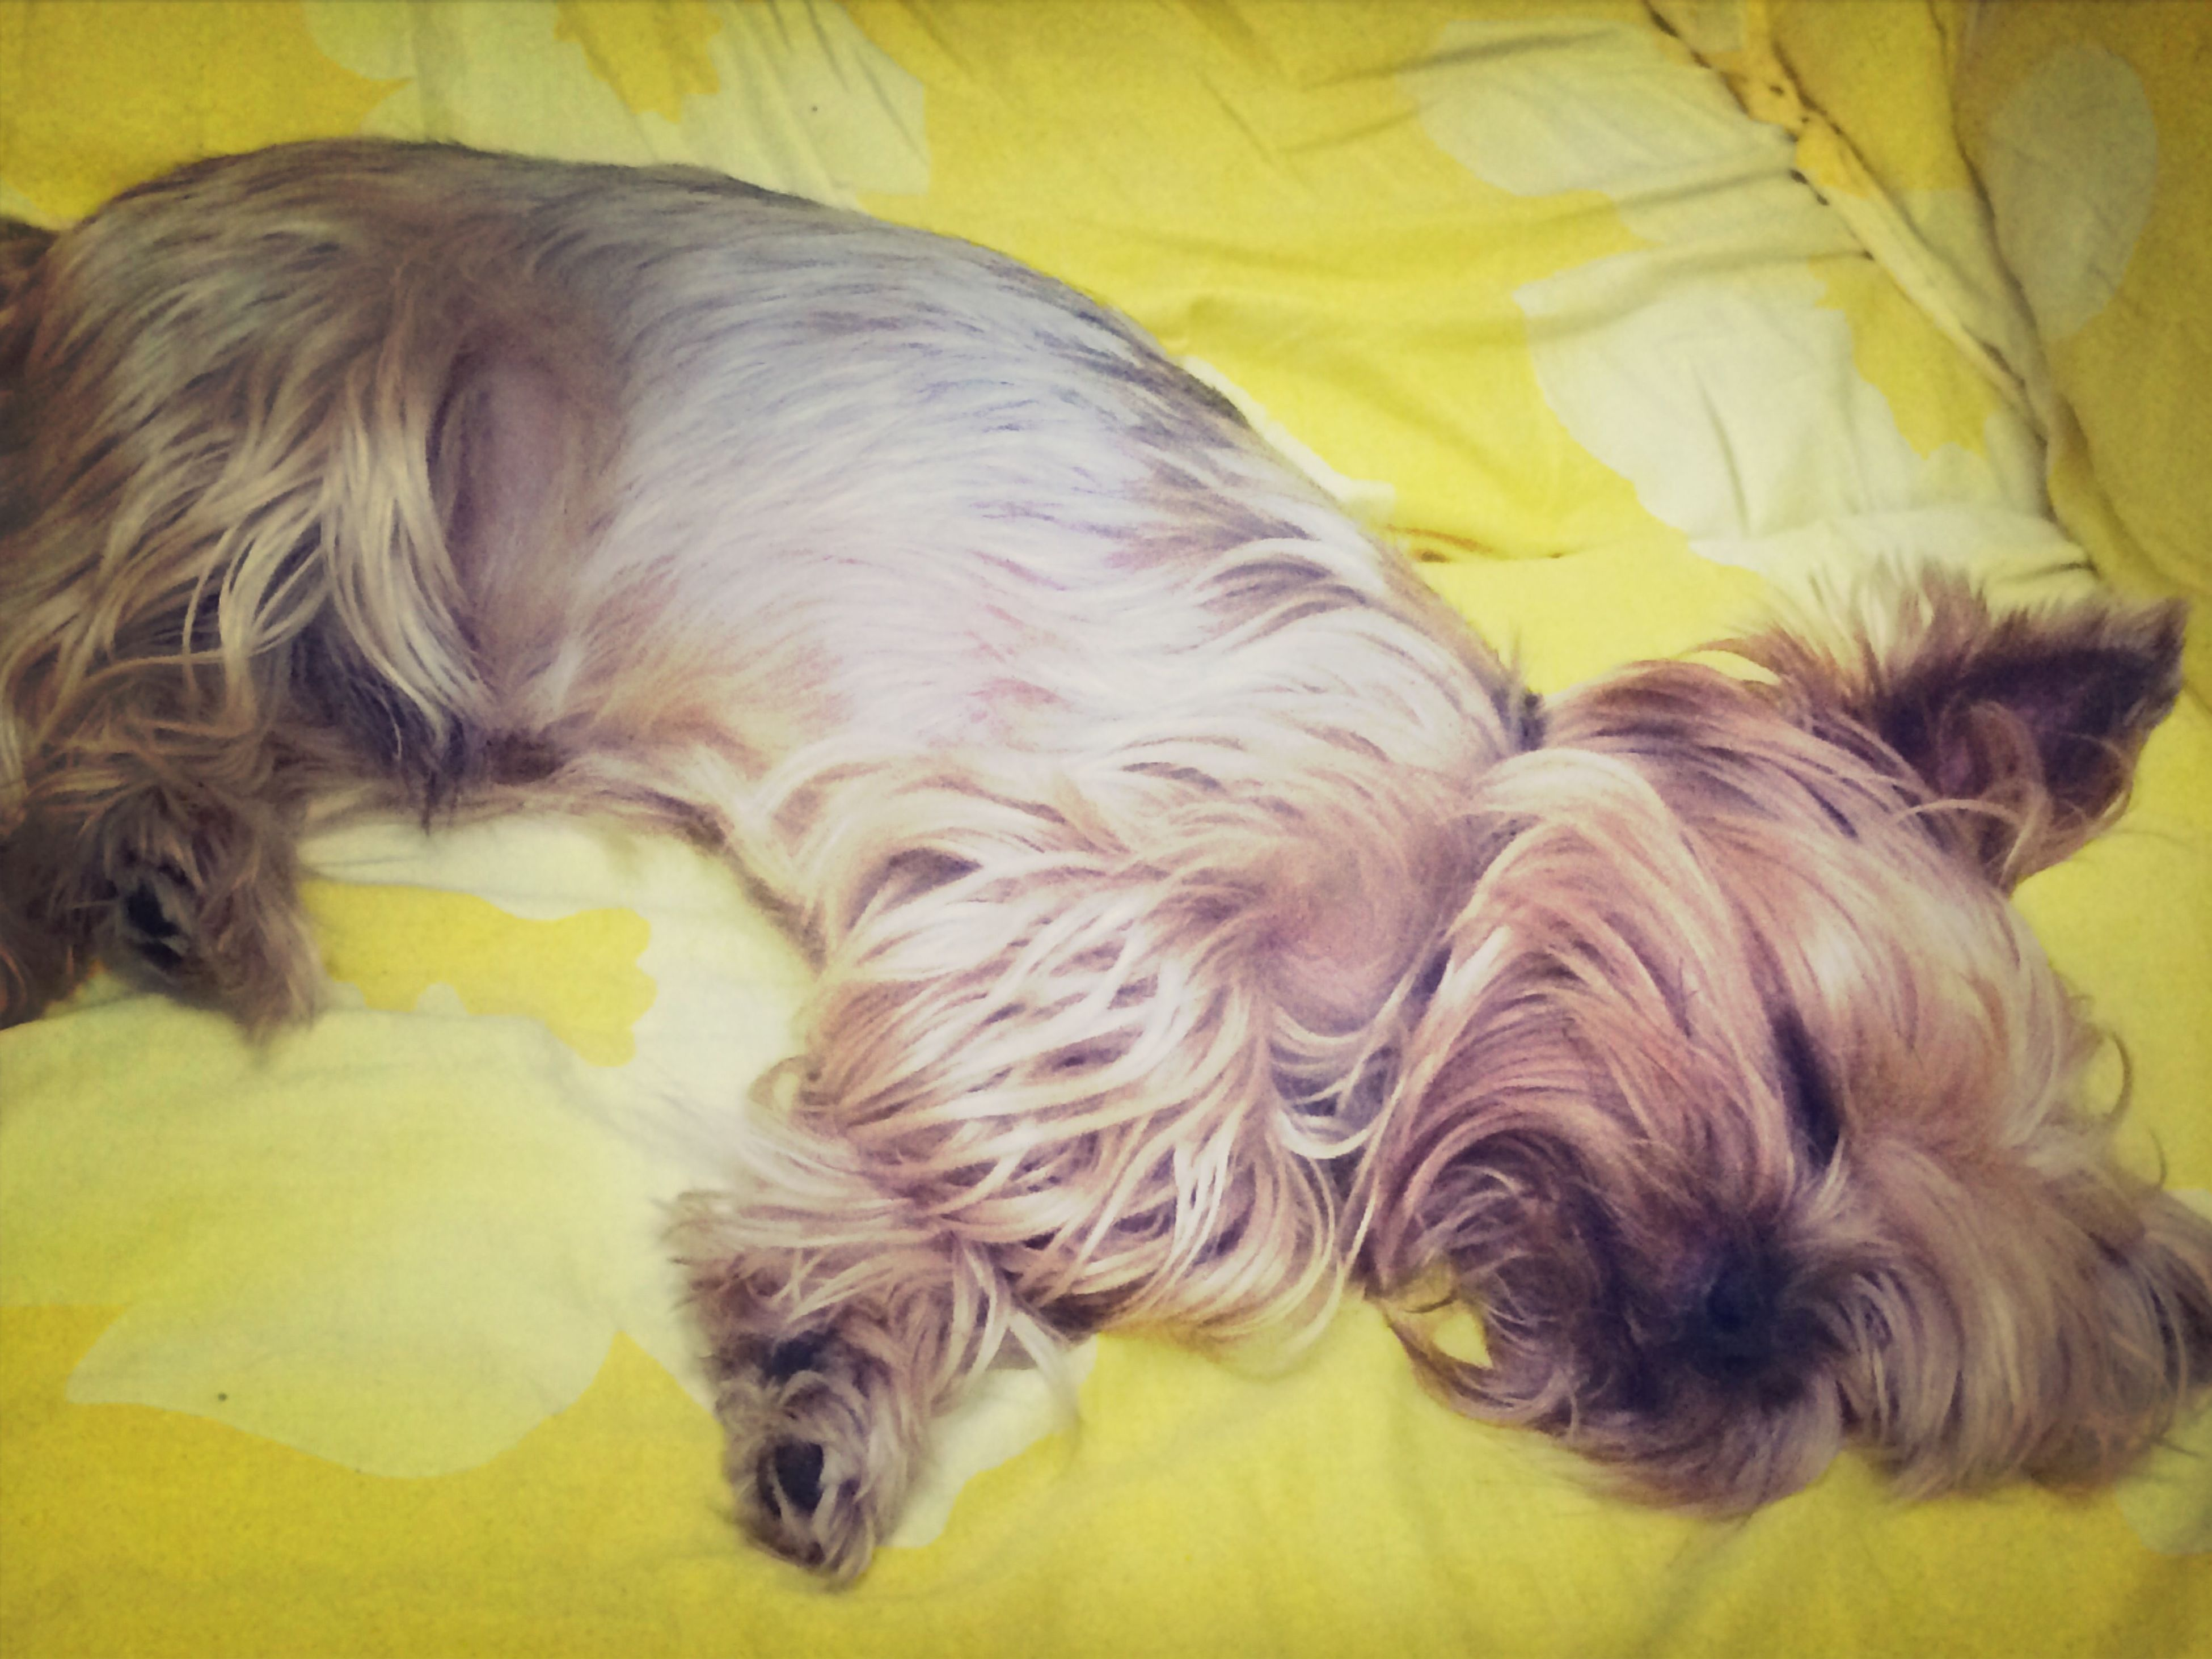 domestic animals, animal themes, pets, mammal, one animal, dog, indoors, relaxation, sleeping, yellow, lying down, resting, animal hair, bed, high angle view, close-up, eyes closed, sofa, home interior, no people